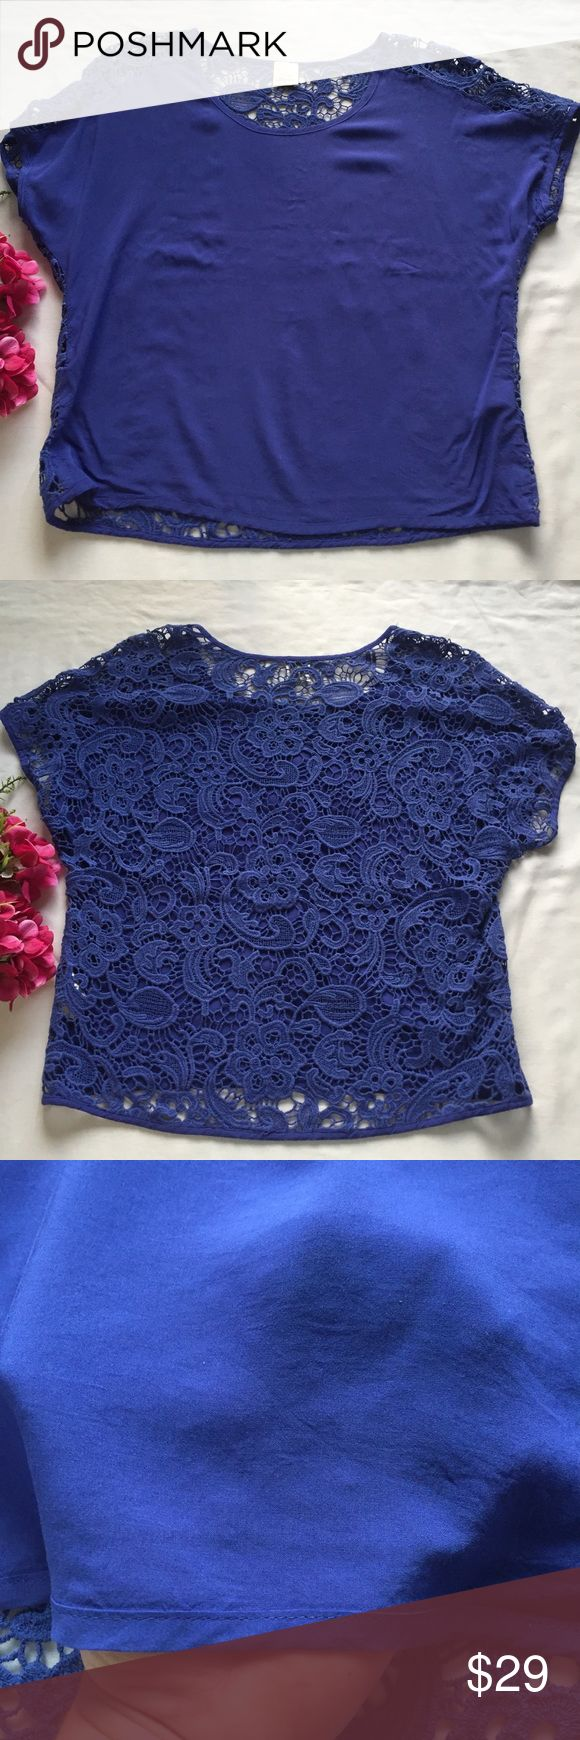 Ella Moss Crochet Back Short Sleeve Blouse Lightweight royal blue blouse from Ella Moss. Solid front panel that is very slightly sheer. Matched with an intricate floral Crochet panel on the back. Slightly oversized with short sleeves in a dolman style. Excellent condition with no flaws. The pit to pit and length are included in the images. (Location I) {no trades - no modeling} Ella Moss Tops Blouses